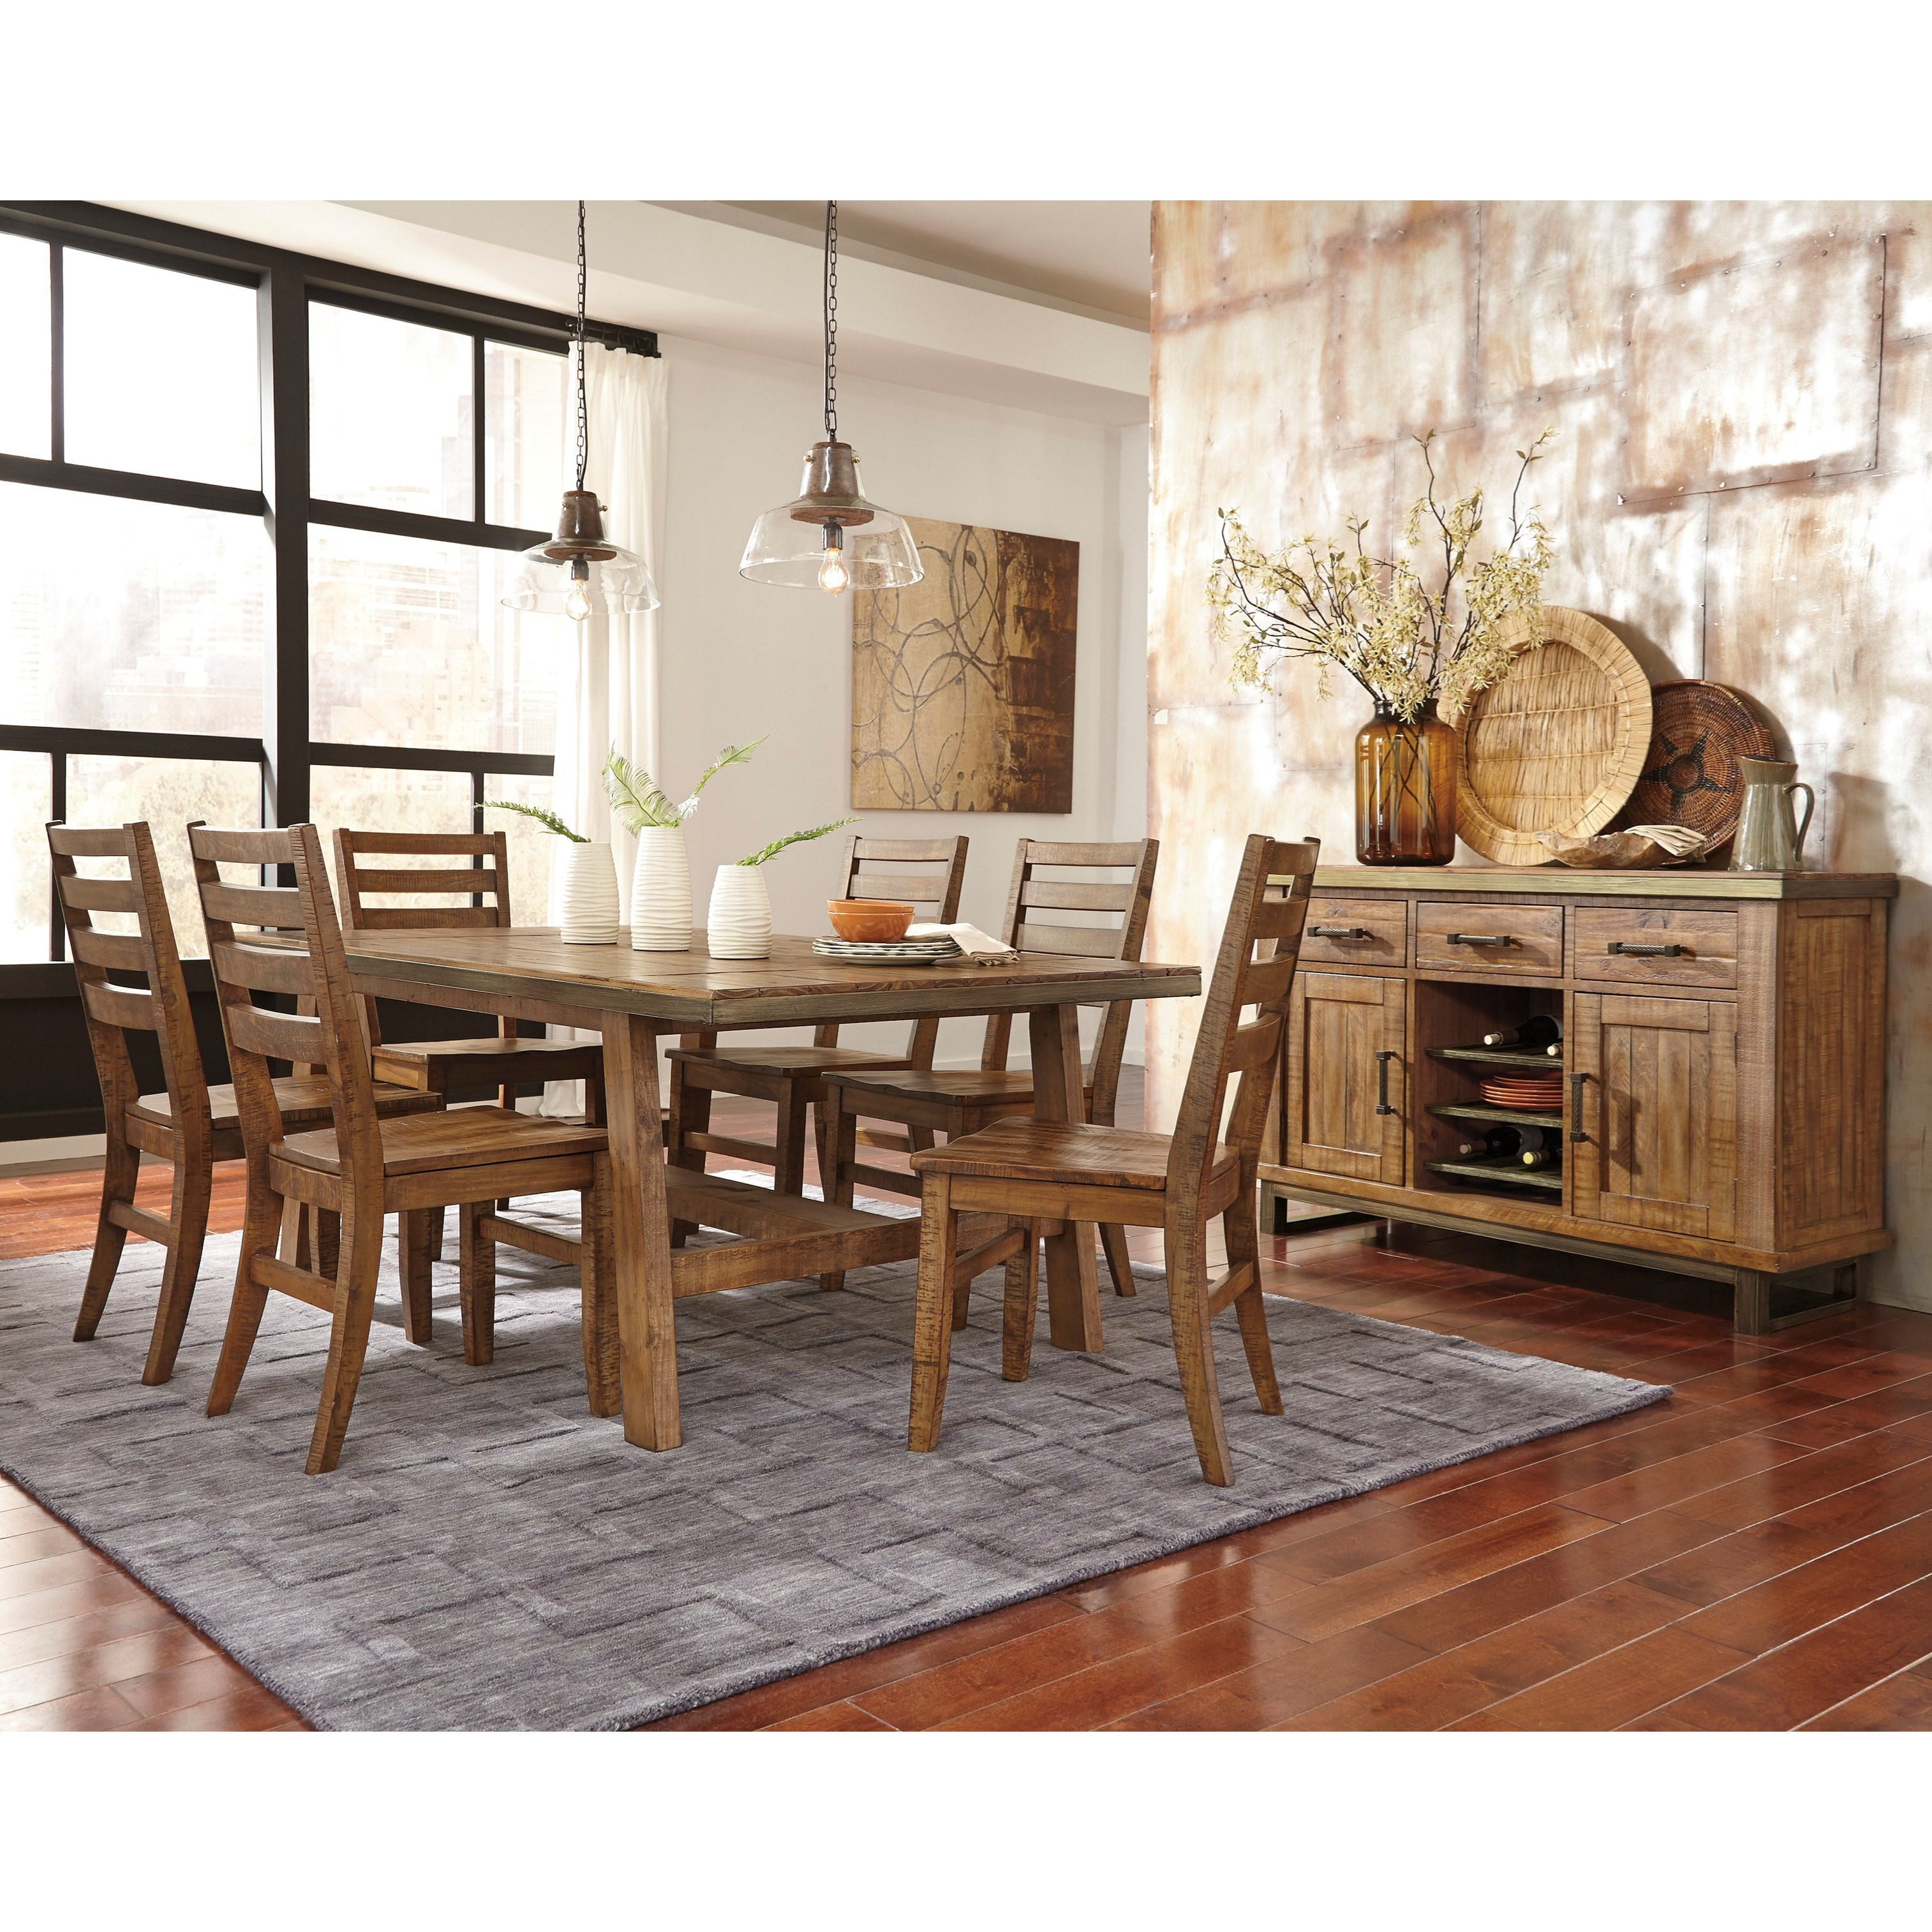 Signature Design by Ashley Dondie Casual Dining Room Group - Item Number: D663 Dining Room Group 1